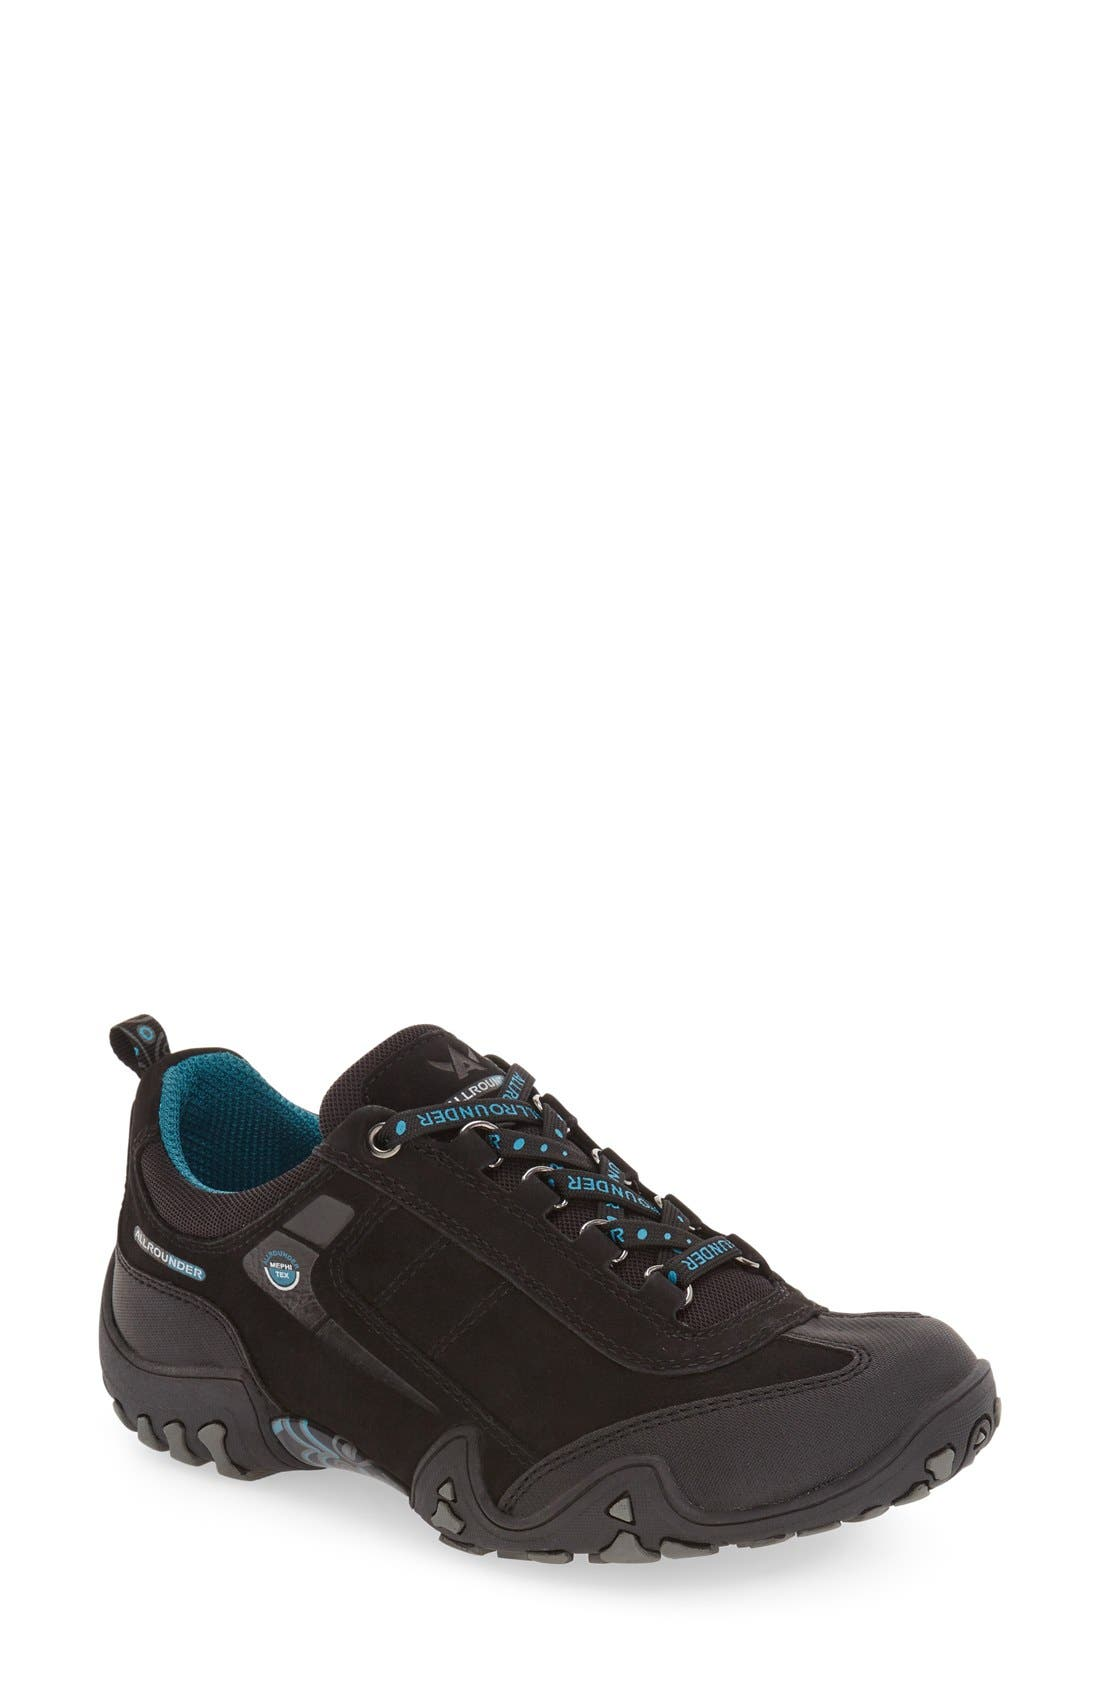 Main Image - Allrounder by Mephisto 'Fina-Tex' Sneaker (Women)